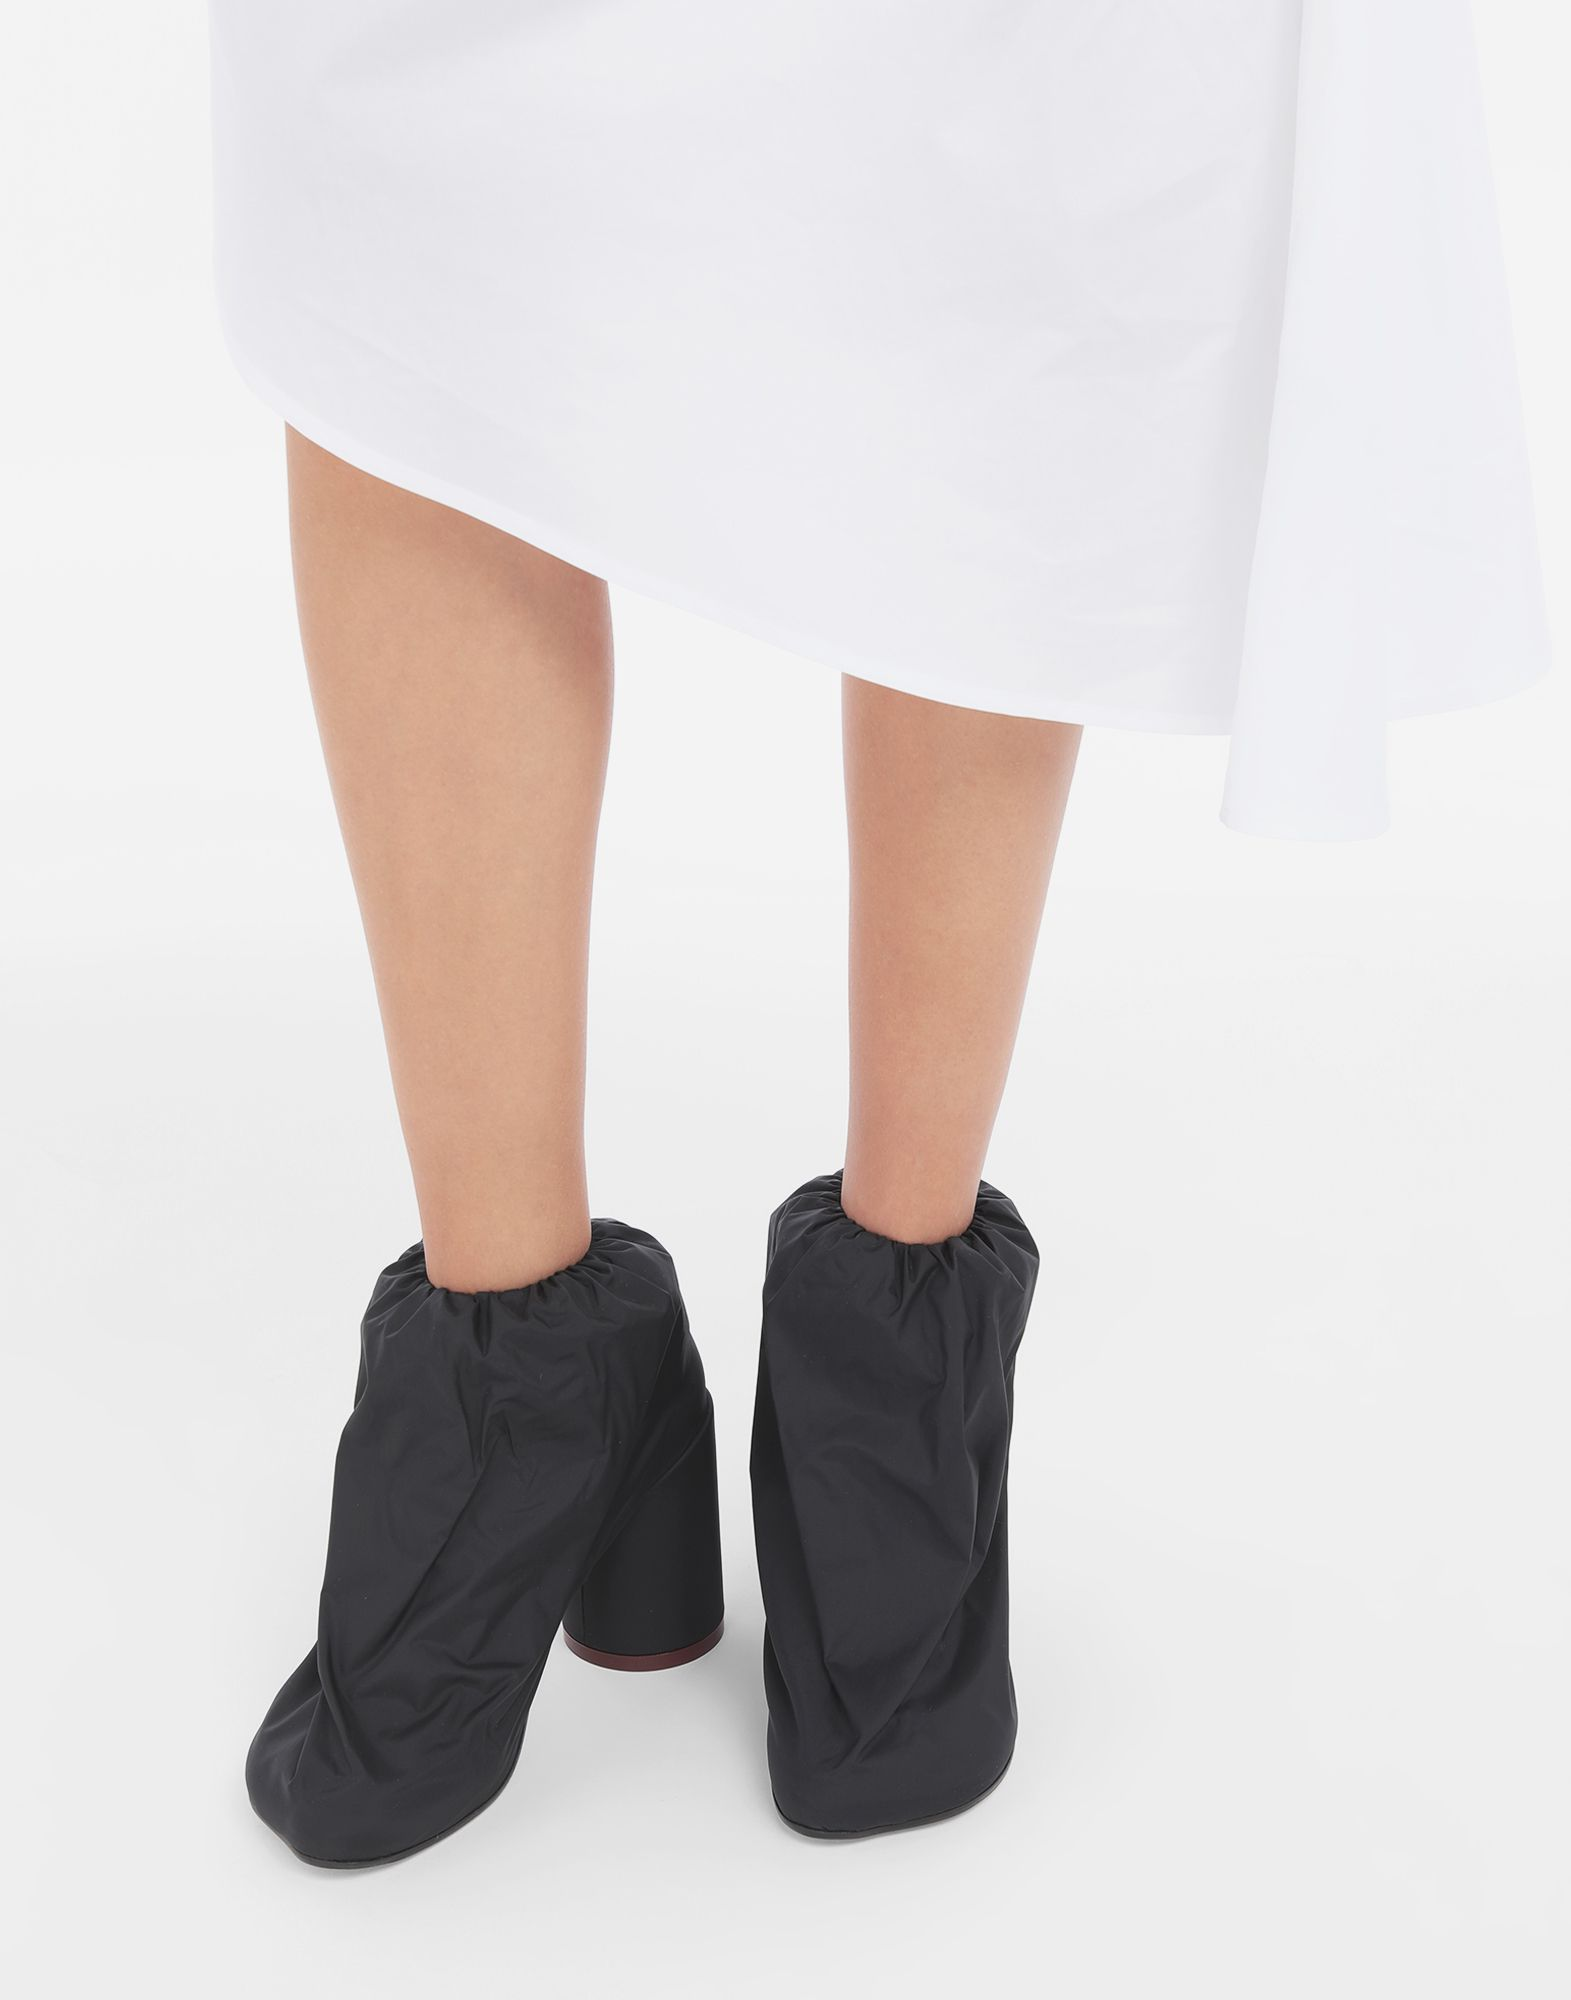 MM6 MAISON MARGIELA Covered ankle boots Ankle boots Woman r